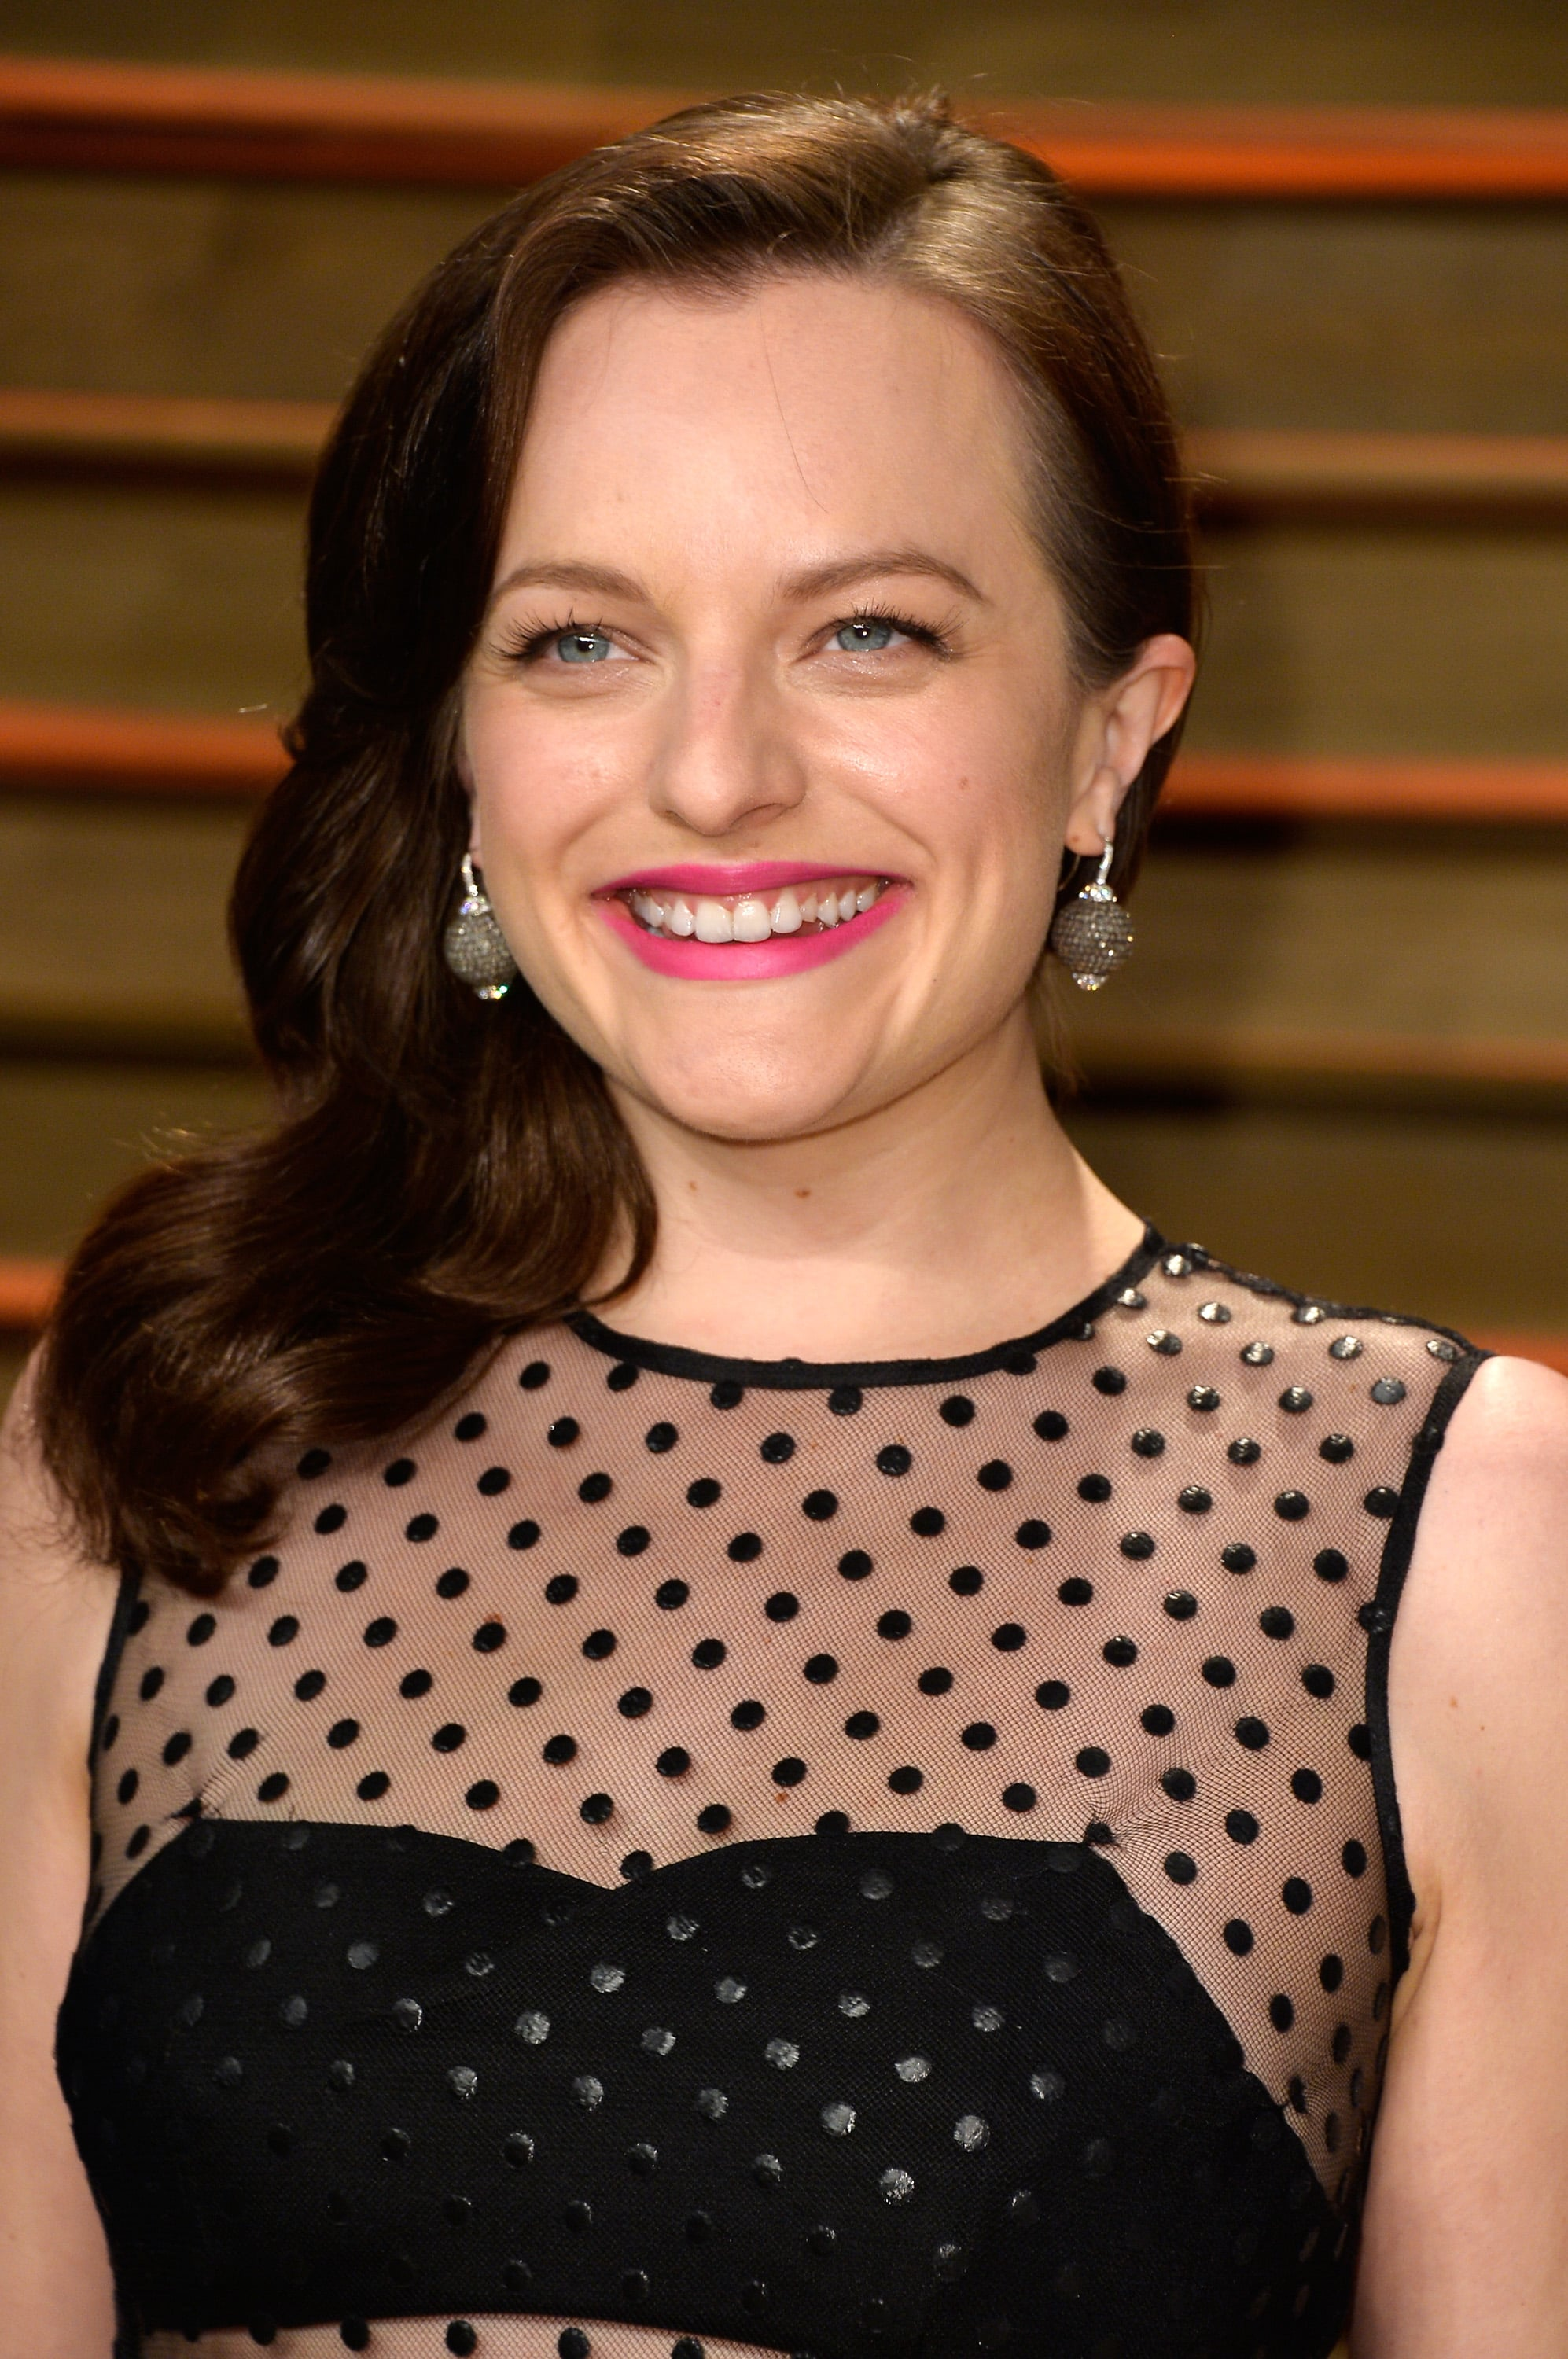 """In 2014, Elisabeth Moss told New York Magazine about her divorce from SNL alum Fred Armisen: """"Looking back, I feel like I was really young, and at the time I didn't think that I was that young. It was extremely traumatic and awful and horrible. At the same time, it turned out for the best. I'm glad that I'm not there. I'm glad that it didn't happen when I was 50. I'm glad I didn't have kids. And I got that out of the way. Hopefully. Like, that's probably not going to happen again."""""""